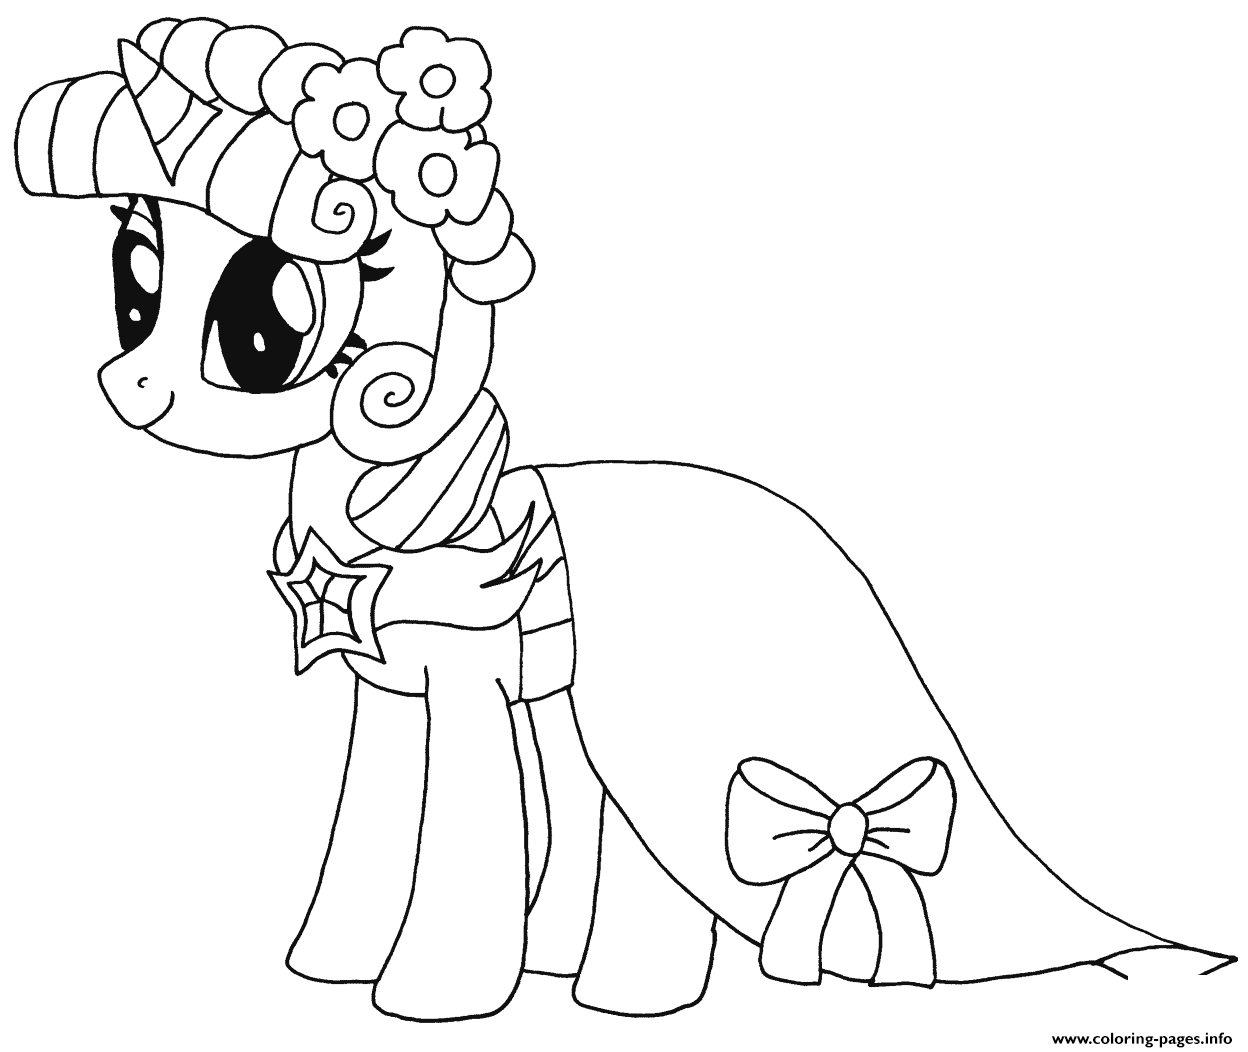 My Little Pony Coloring Pages To Print Magnificent My Little Pony Coloring Pages Free Printable Design Ideas